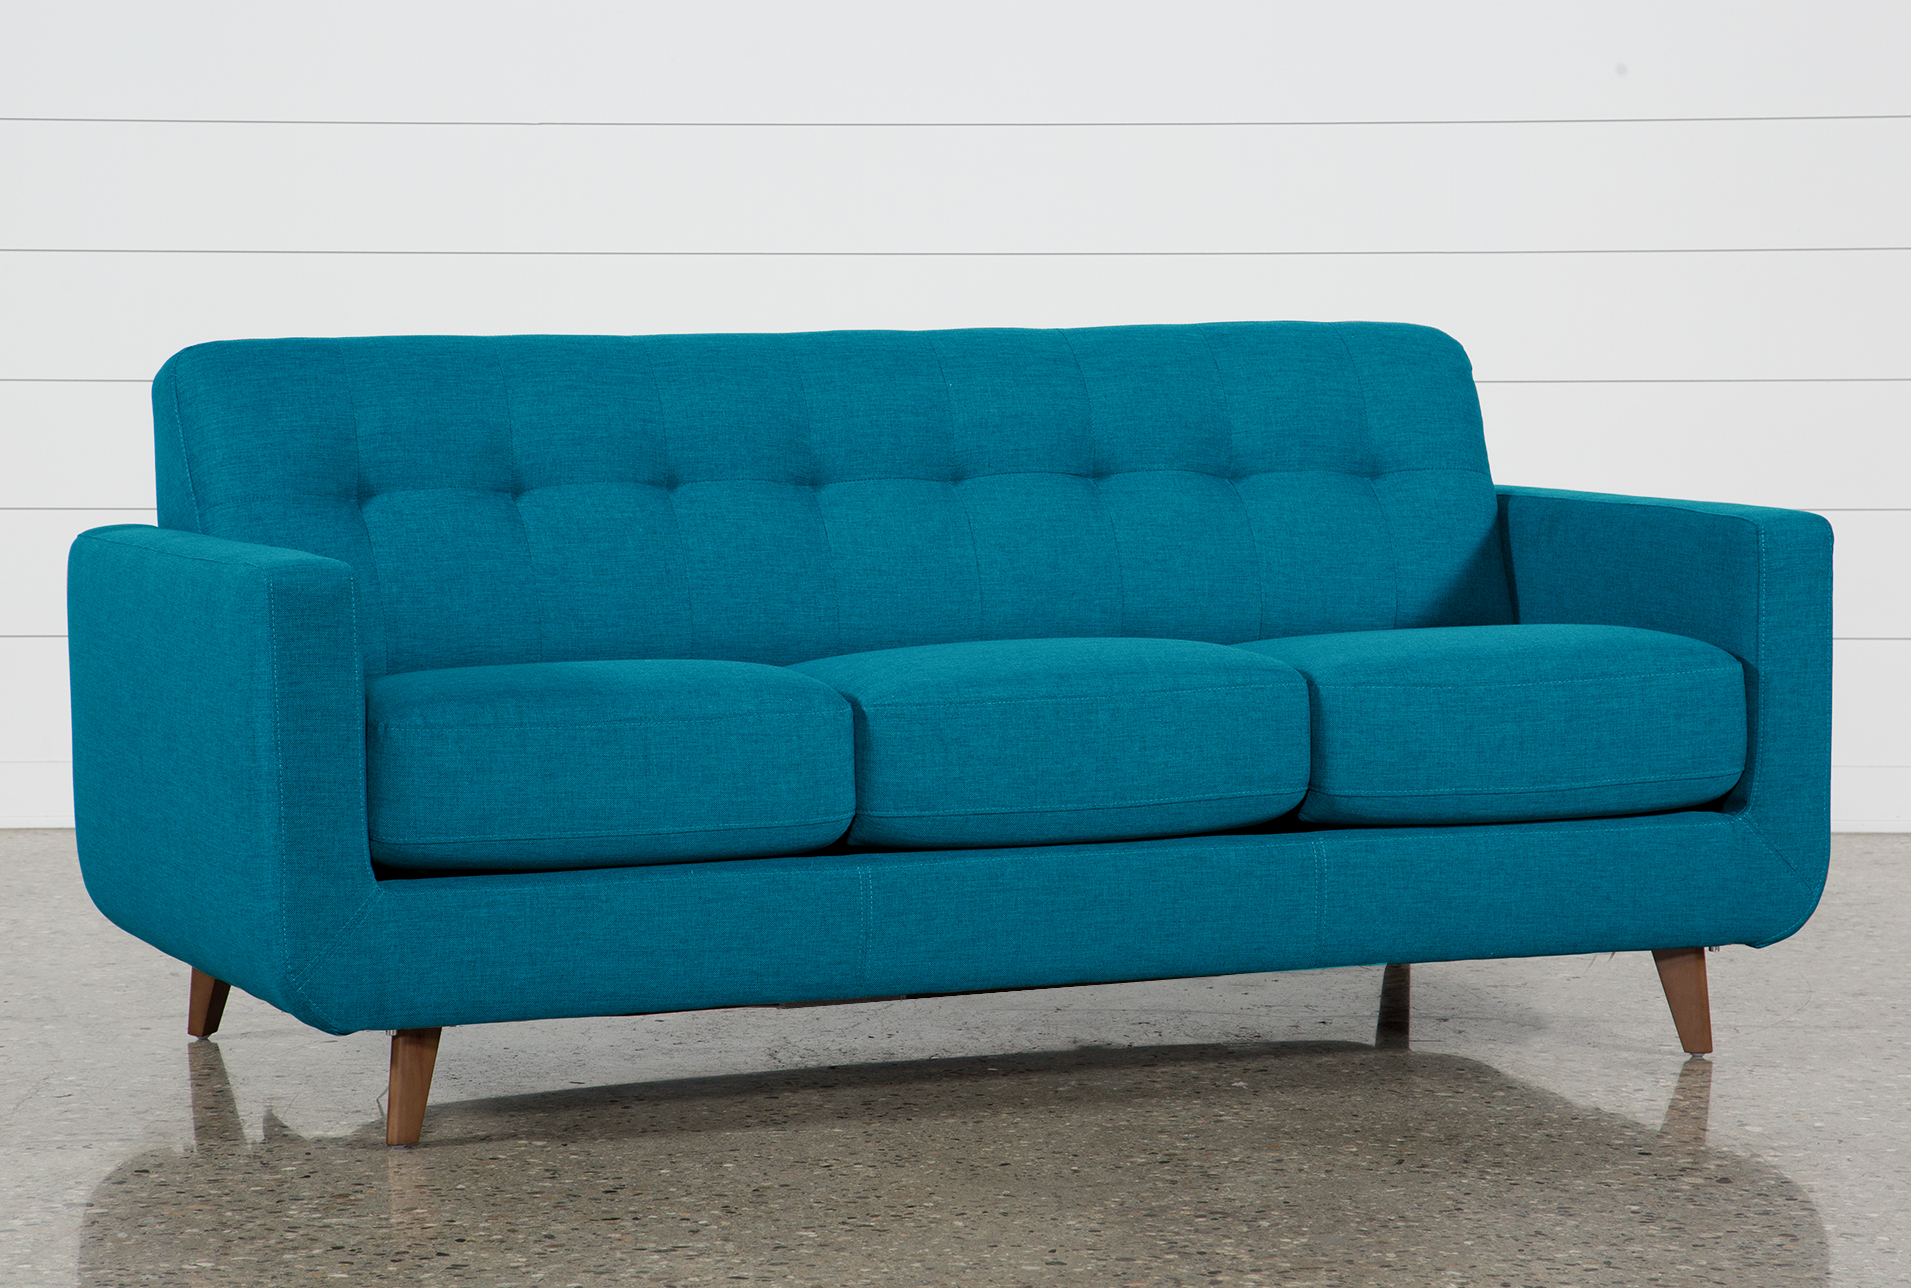 Large Sofa Beds Everyday Use Sofa Beds Sleeper Sofas Free Assembly With Delivery Living